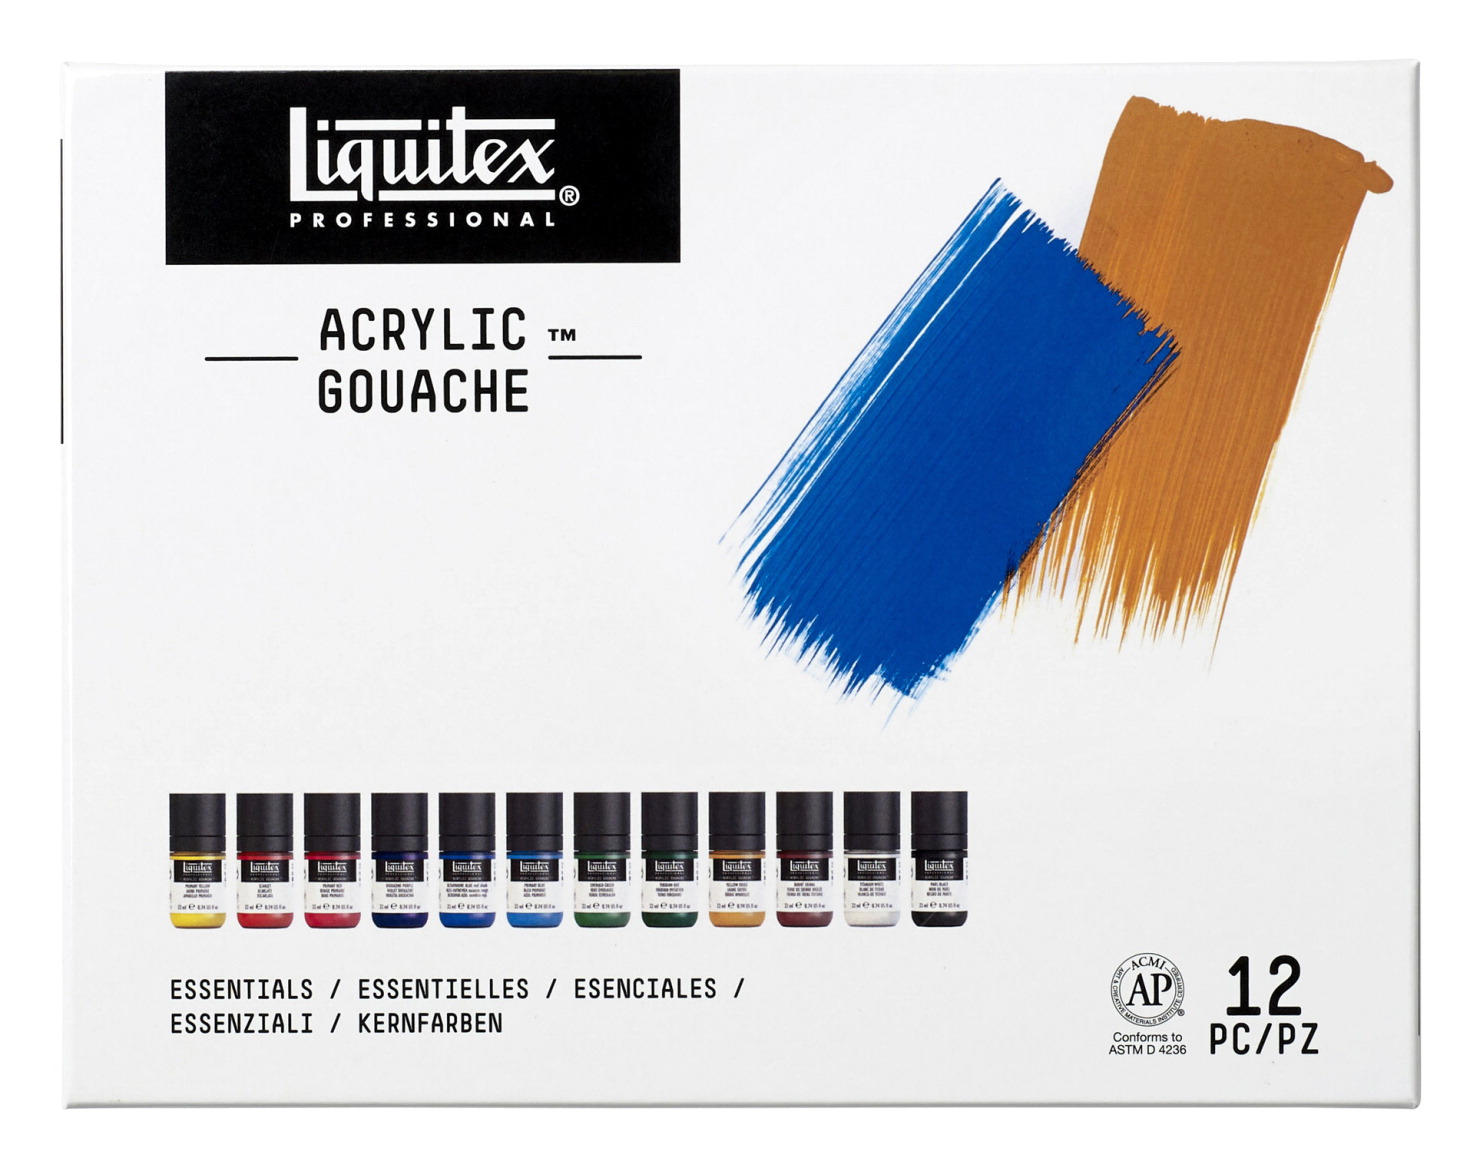 Liquitex Acrylic Gouaches, 37/50 Ounces, Assorted Essential Colors, Set of 12